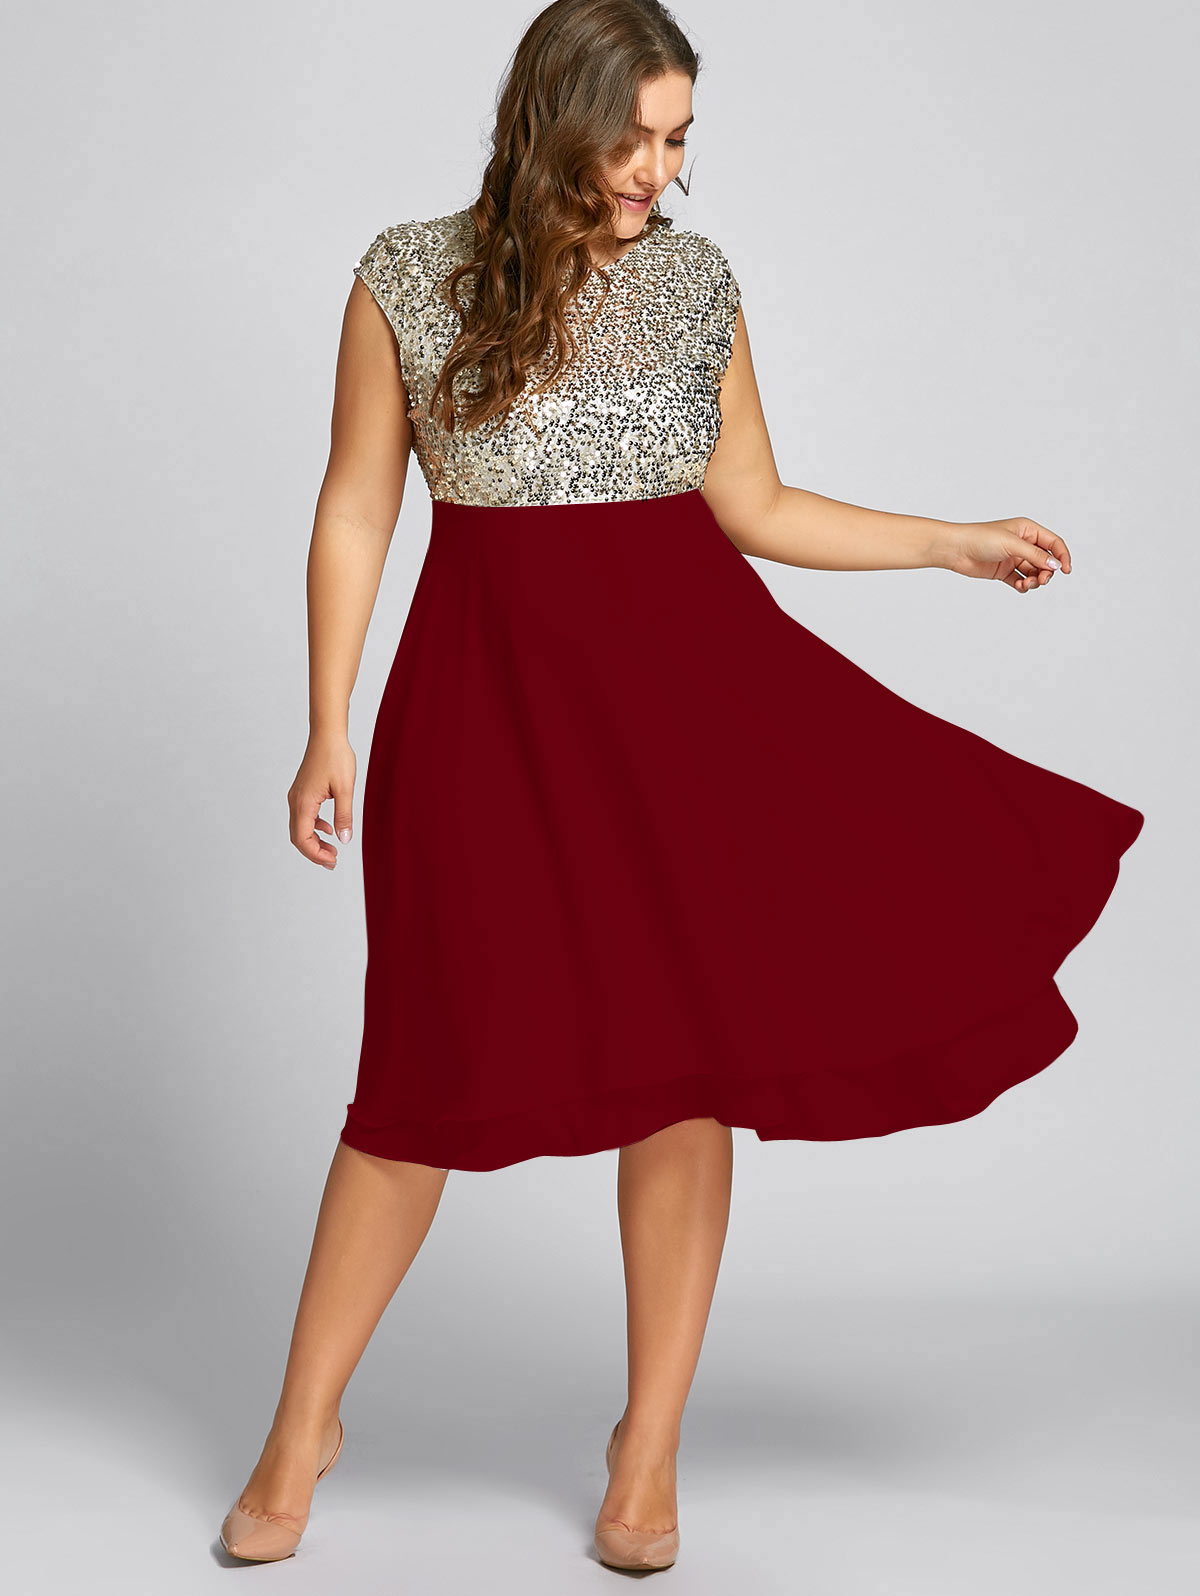 f5723cde924 Gamiss Women Flounce Plus Size Dress Sequin Sparkly Dresses Cocktail Short  Sleeves Party Ball Gown Knee Length Female Vestidos-in Dresses from Women s  ...